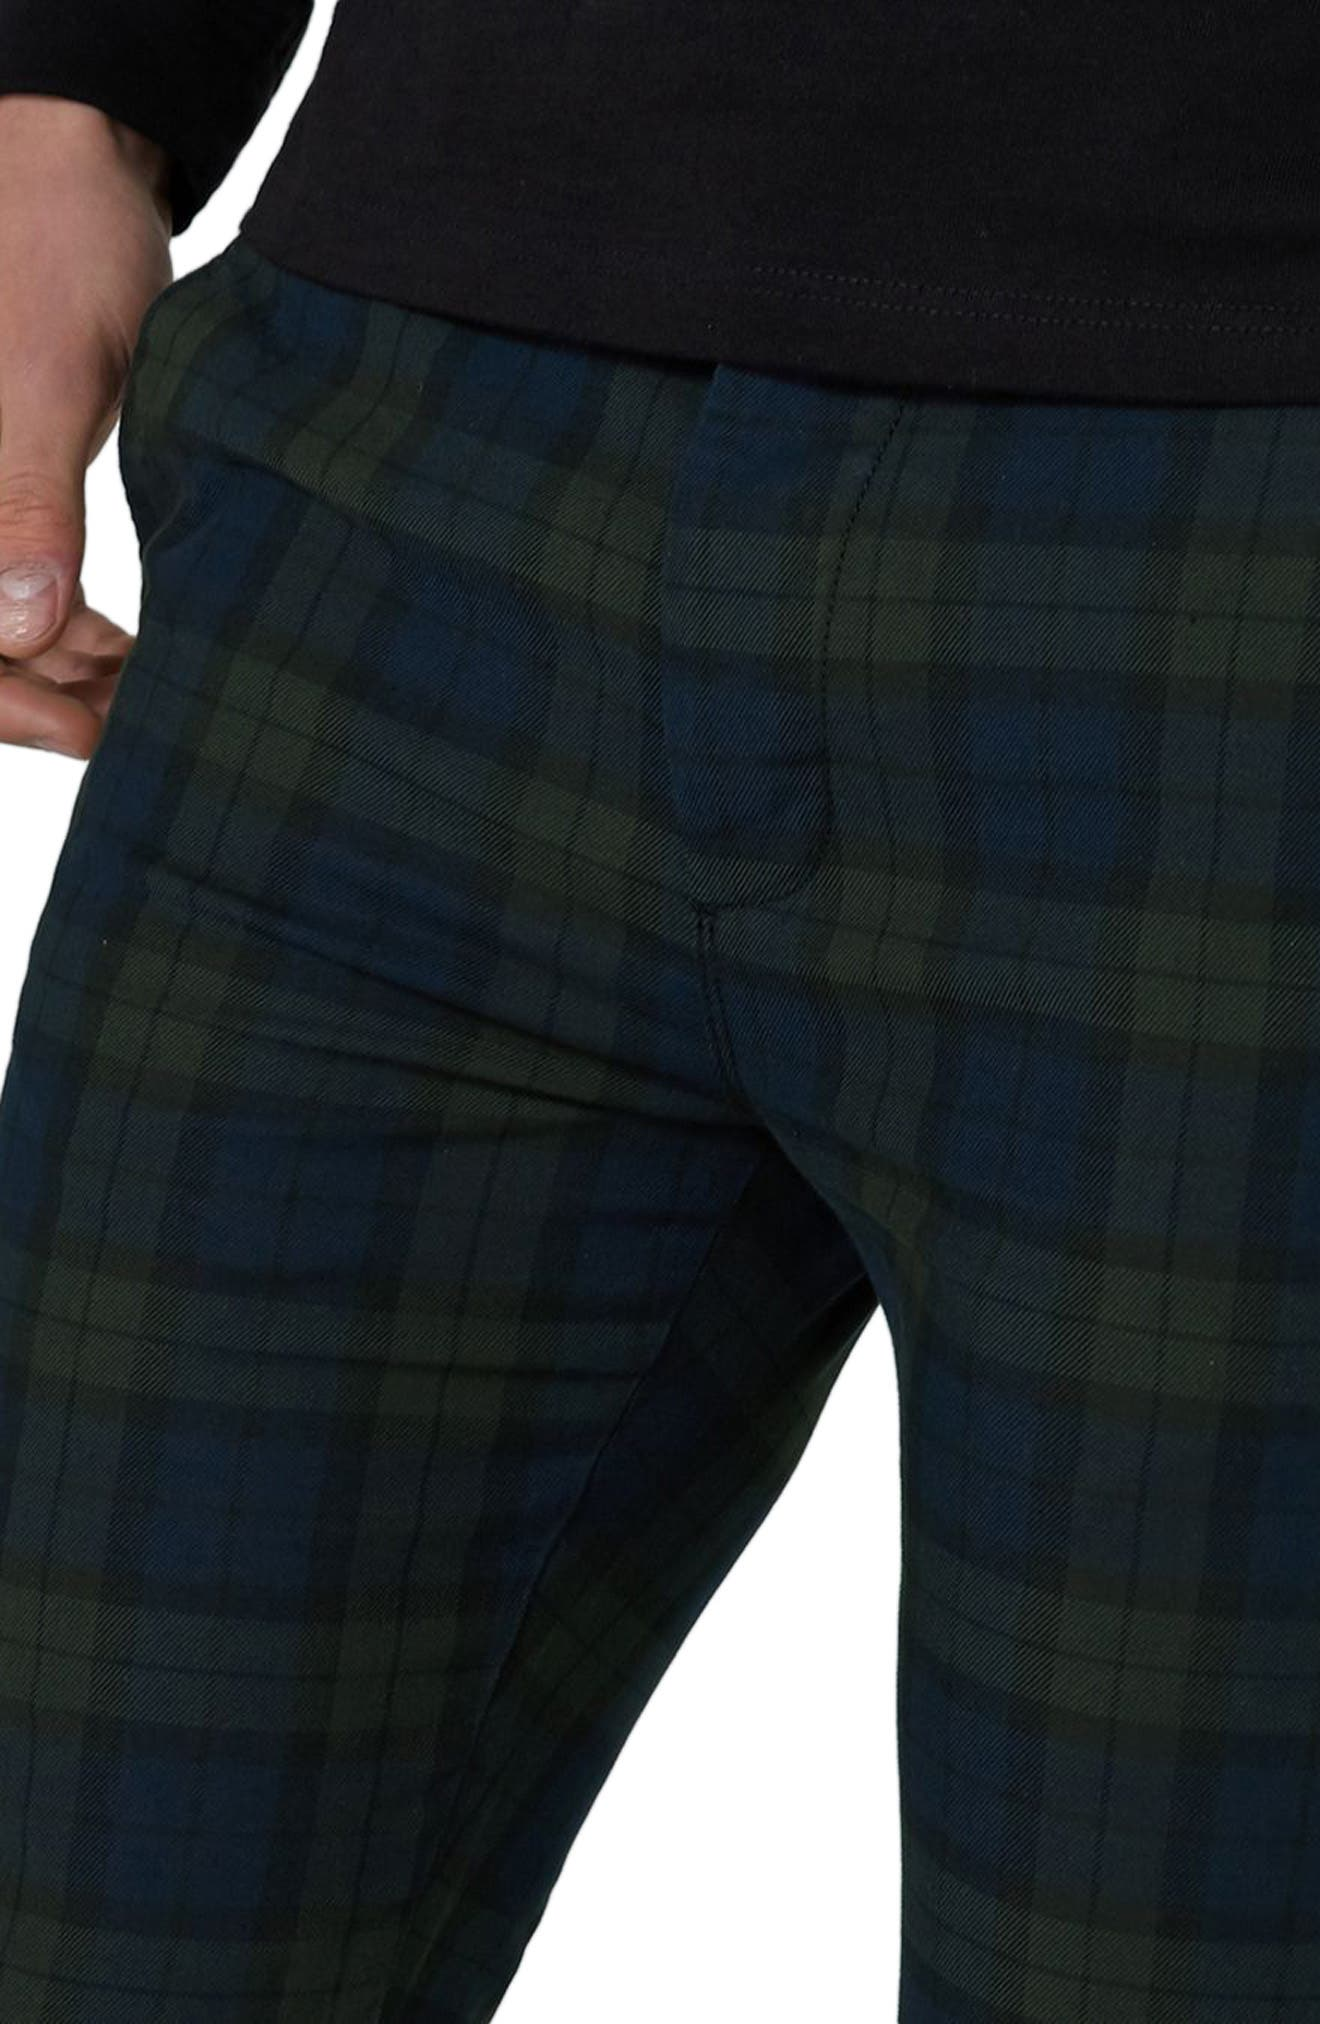 Alternate Image 3  - Topman Black Watch Check Stretch Skinny Fit Trousers